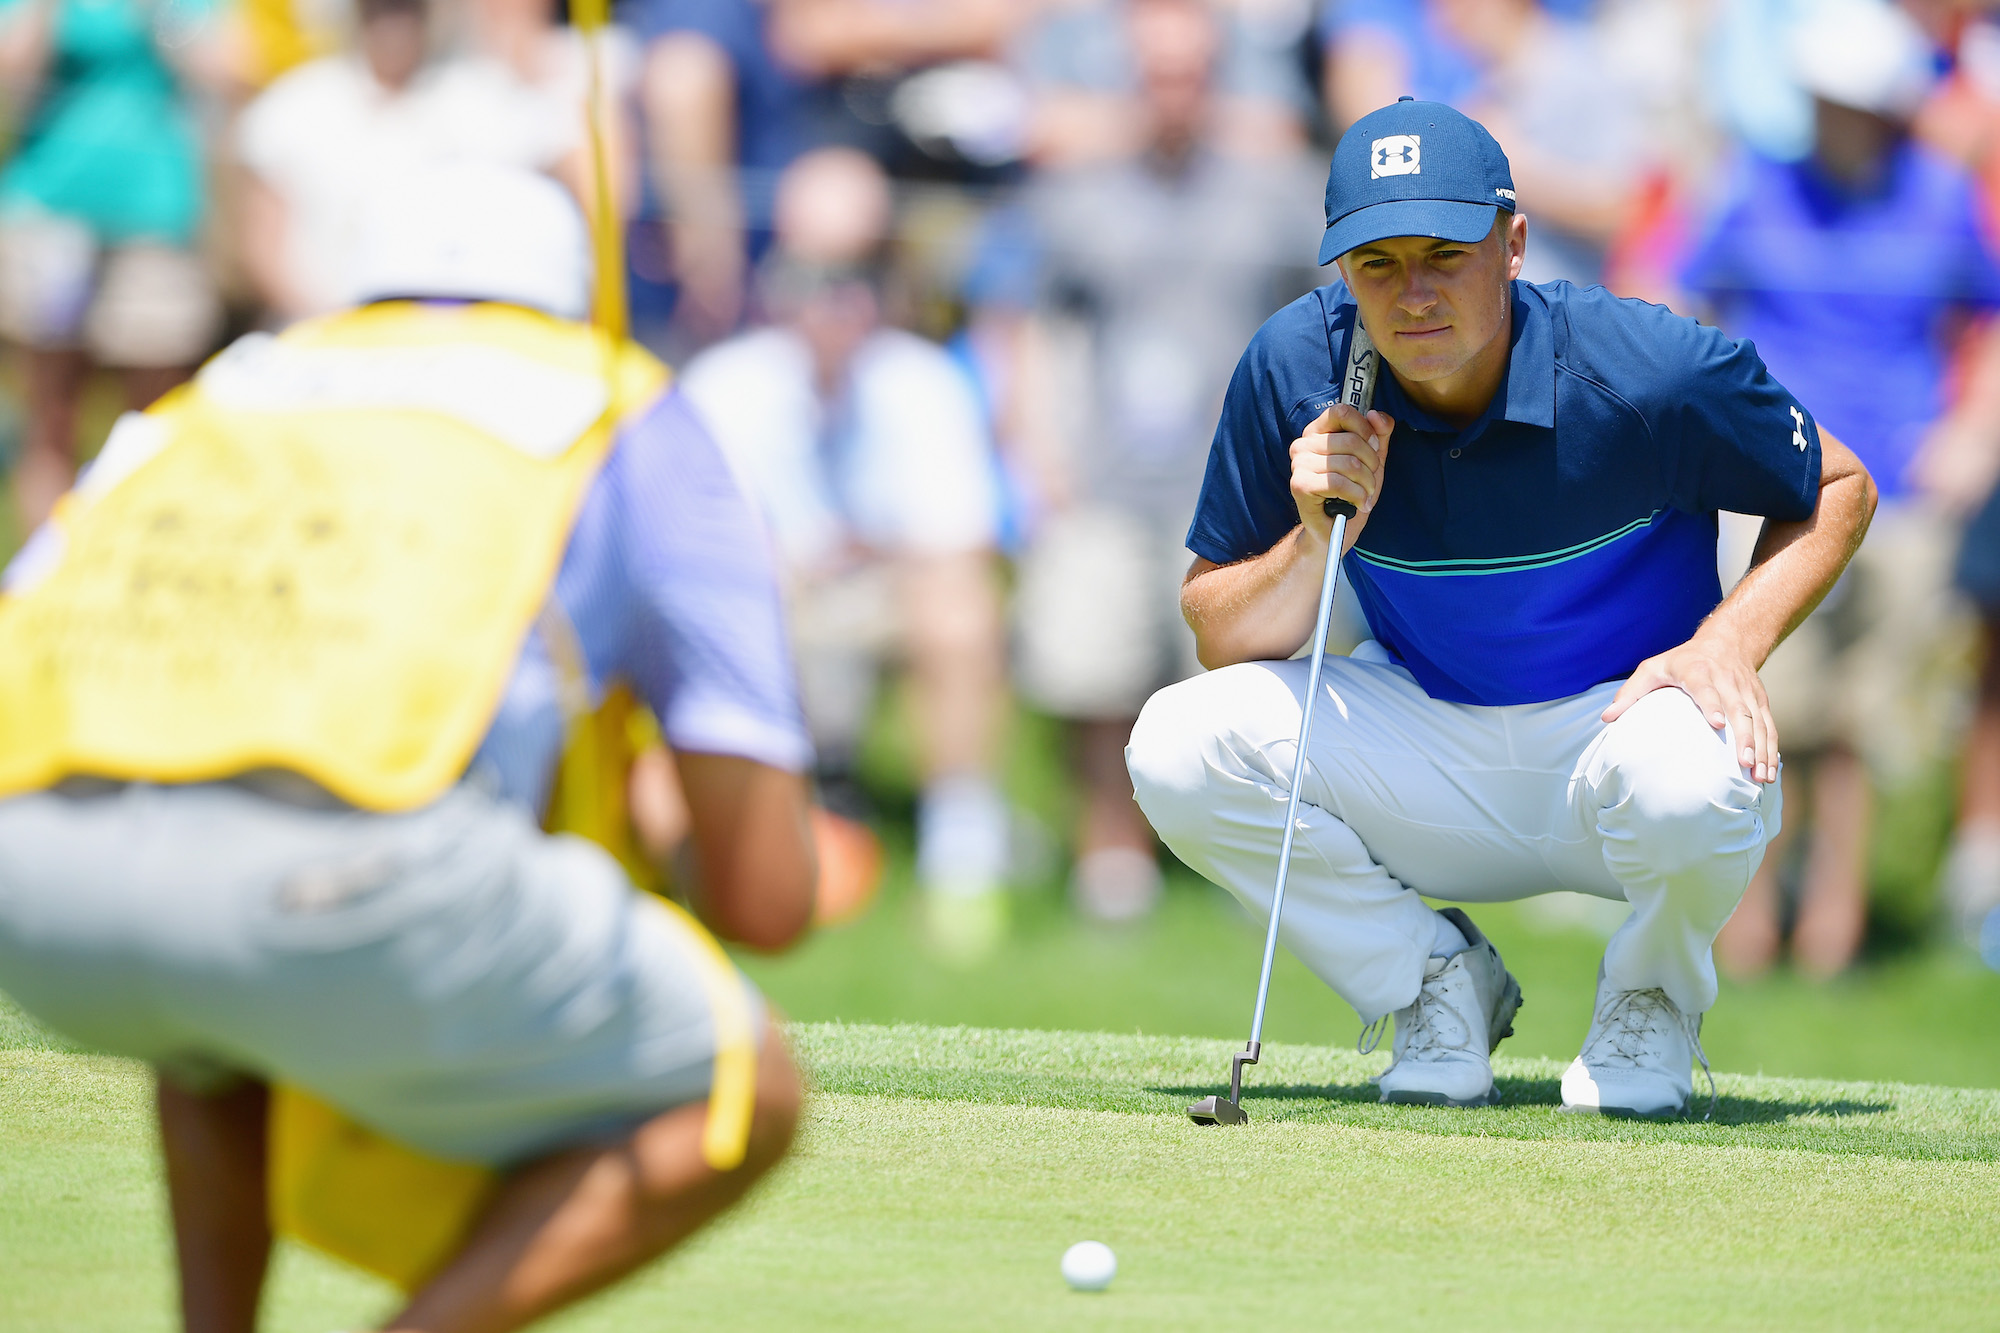 2018 PGA Championship: Round 3 - Lining Up a Putt